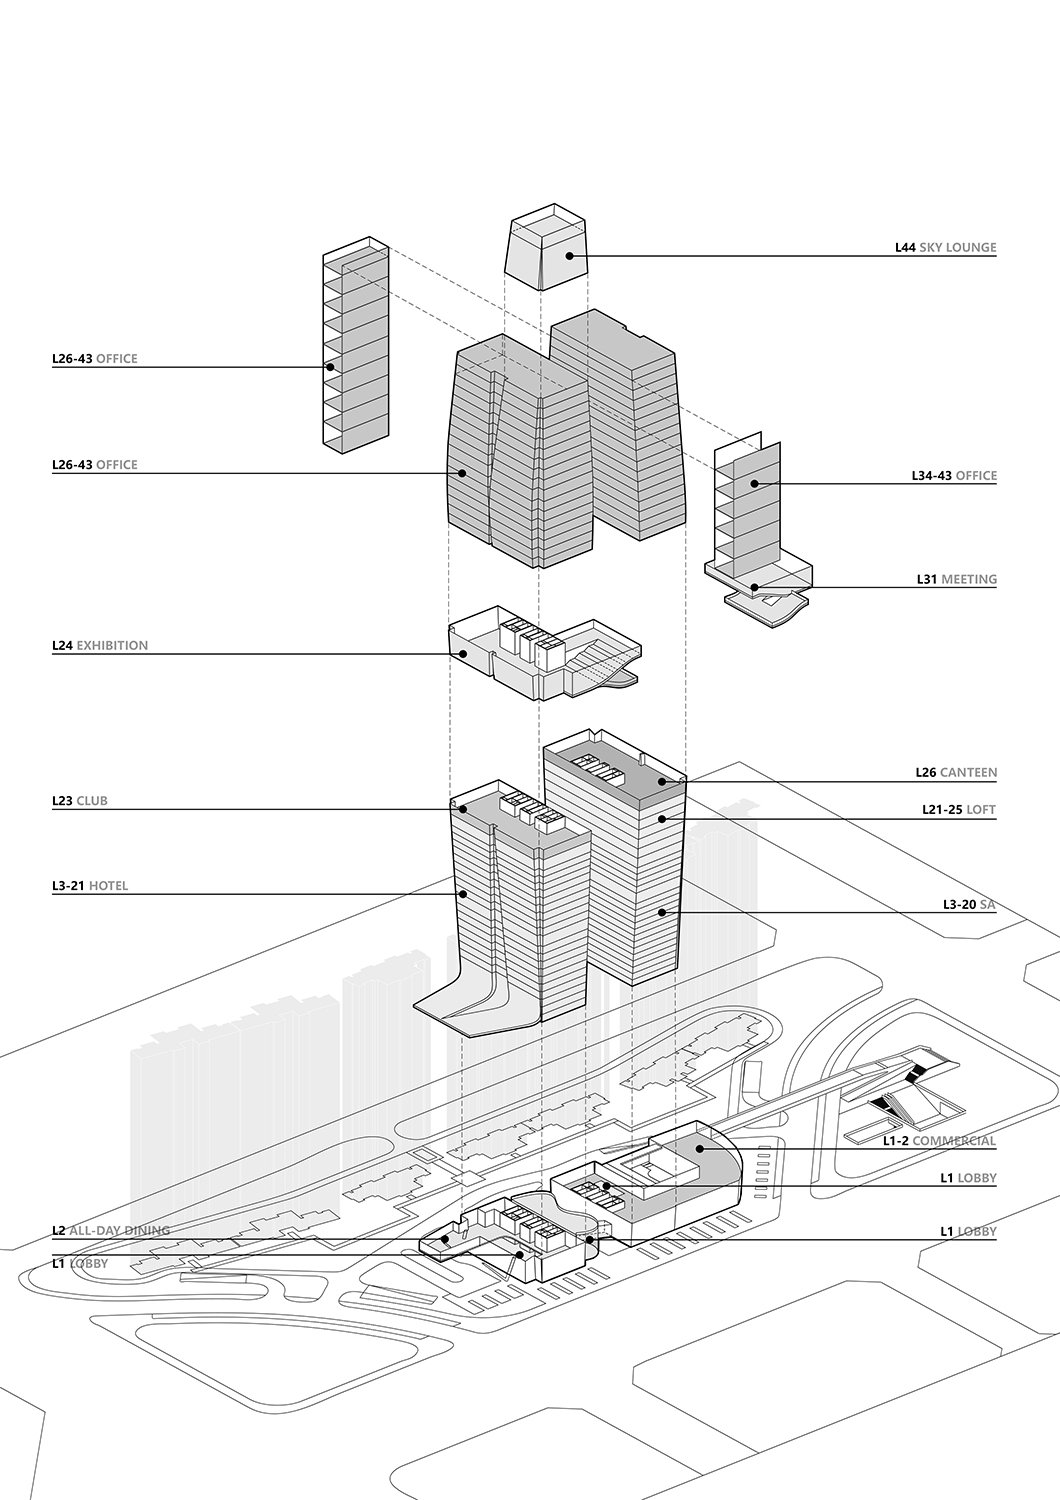 Exploded Axonometric Diagram All renderings and drawings © Rocco Design Architects}